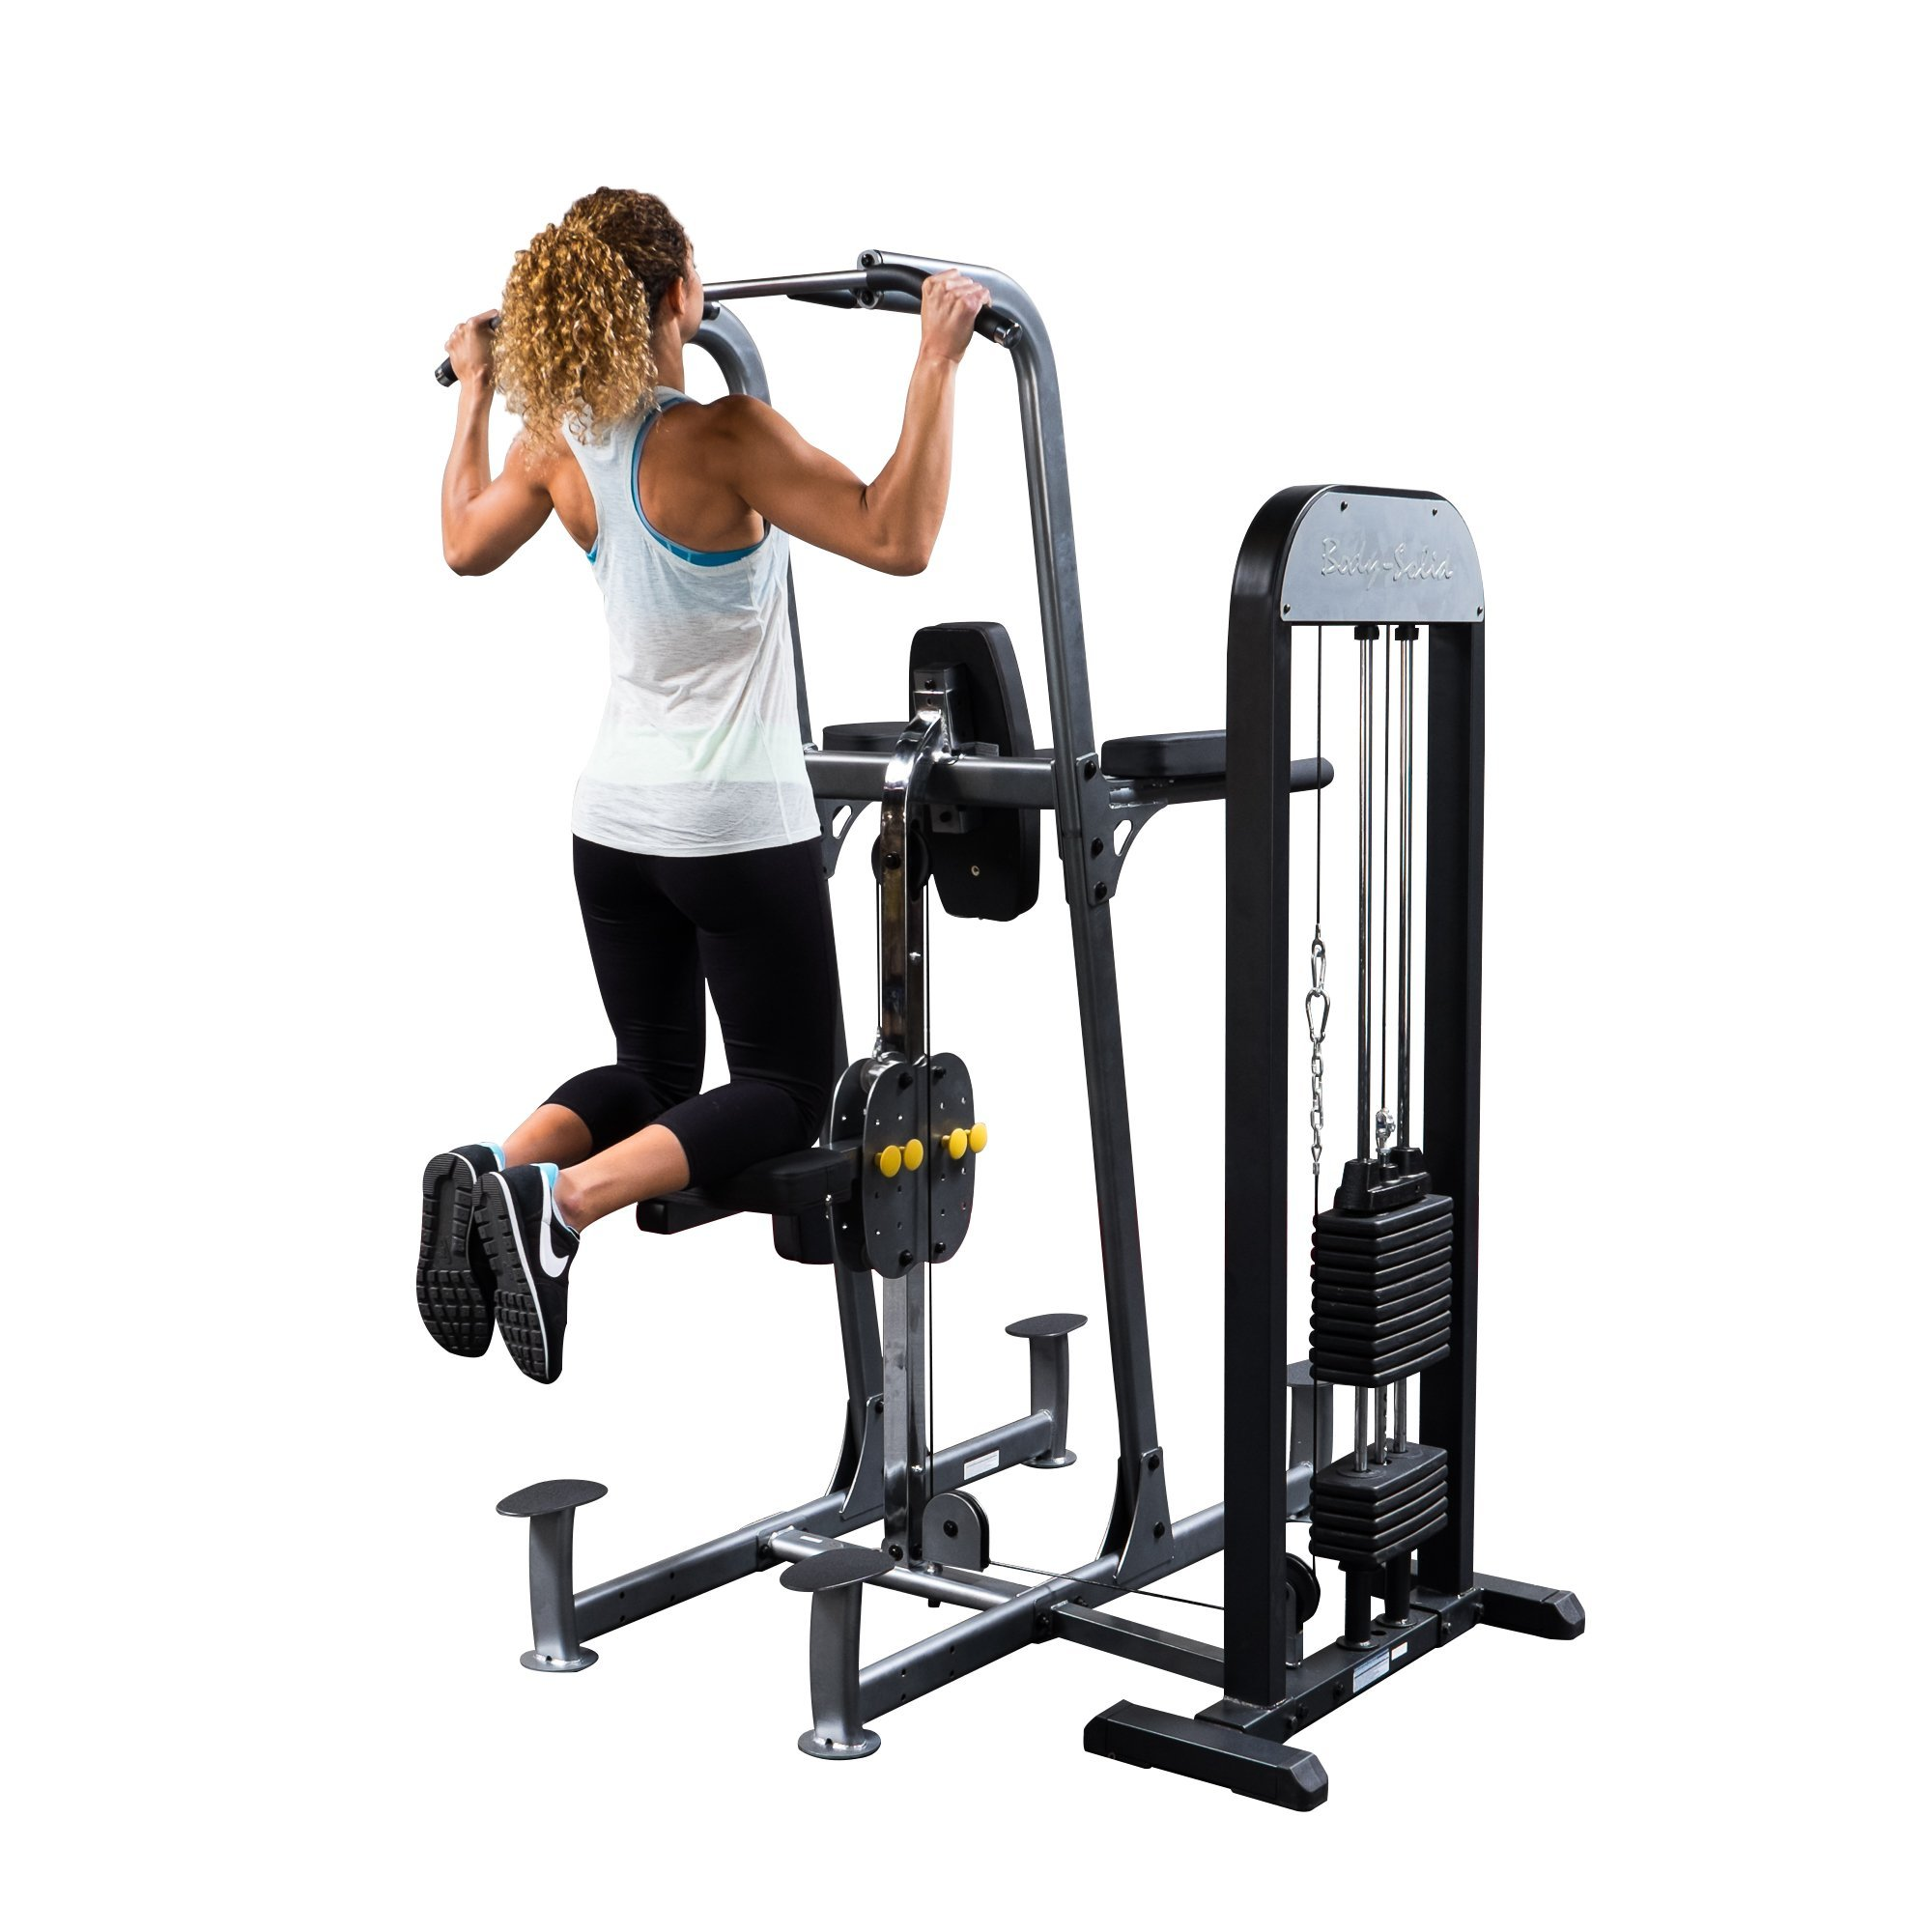 Body Solid FCDSTK3 Pro Select Weight Assisted Vertical Knee Raise Dip and Chin Station with Oval Mainframe Construction and DuraFirm Padding 310-Pound